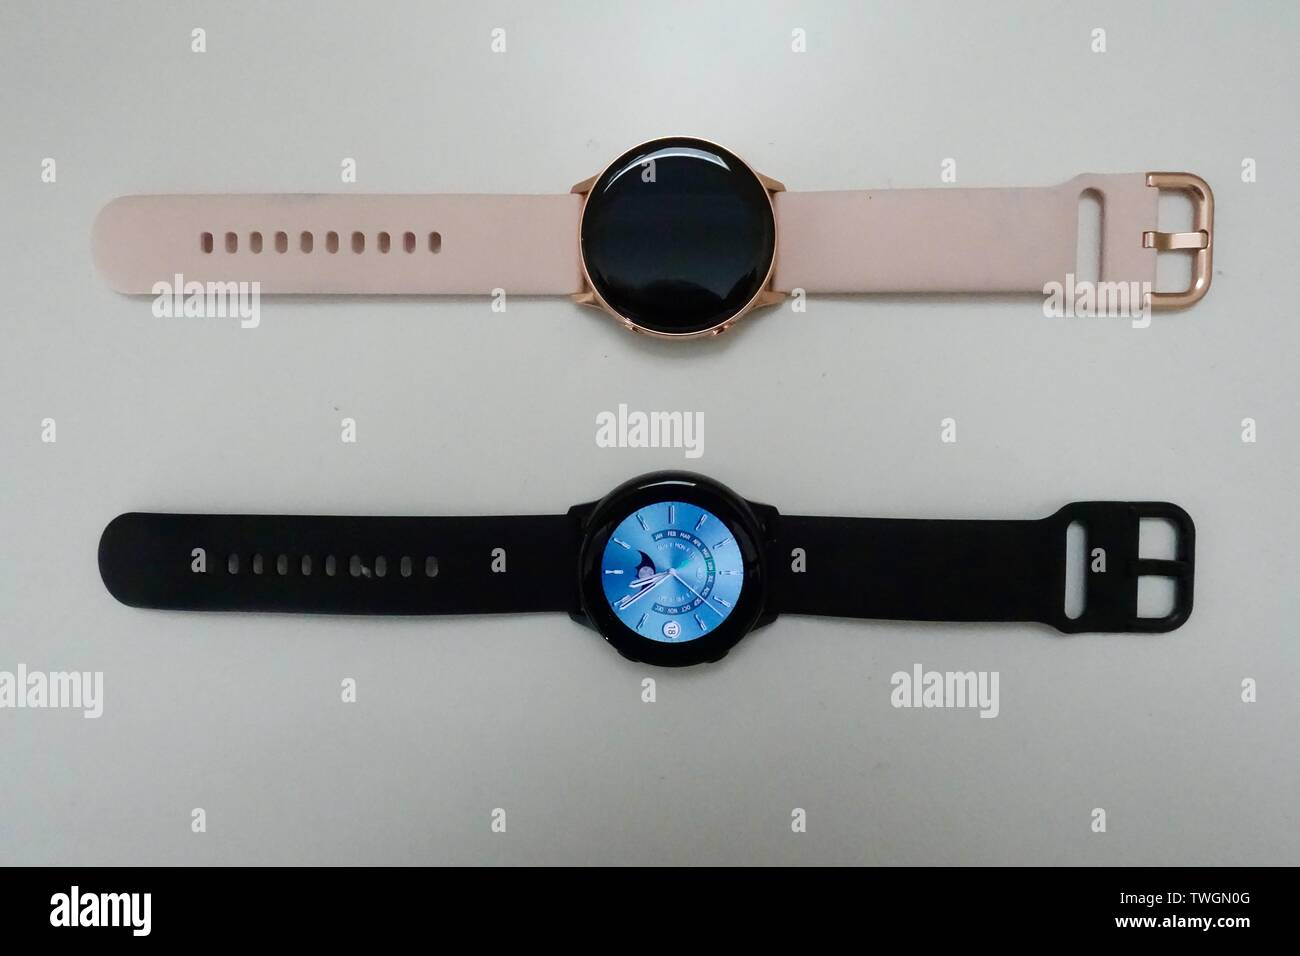 A Black And Rose Gold Samsung Galaxy Active Smart Watches Laying Next To Each Other On A White Background Stock Photo Alamy